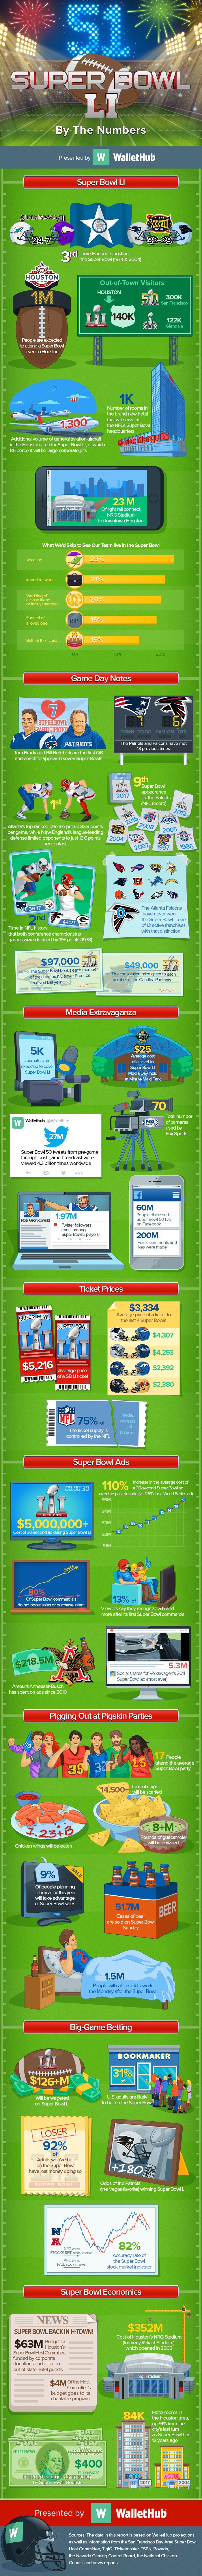 super-bowl-li-by-the-numbers-v4_optimized